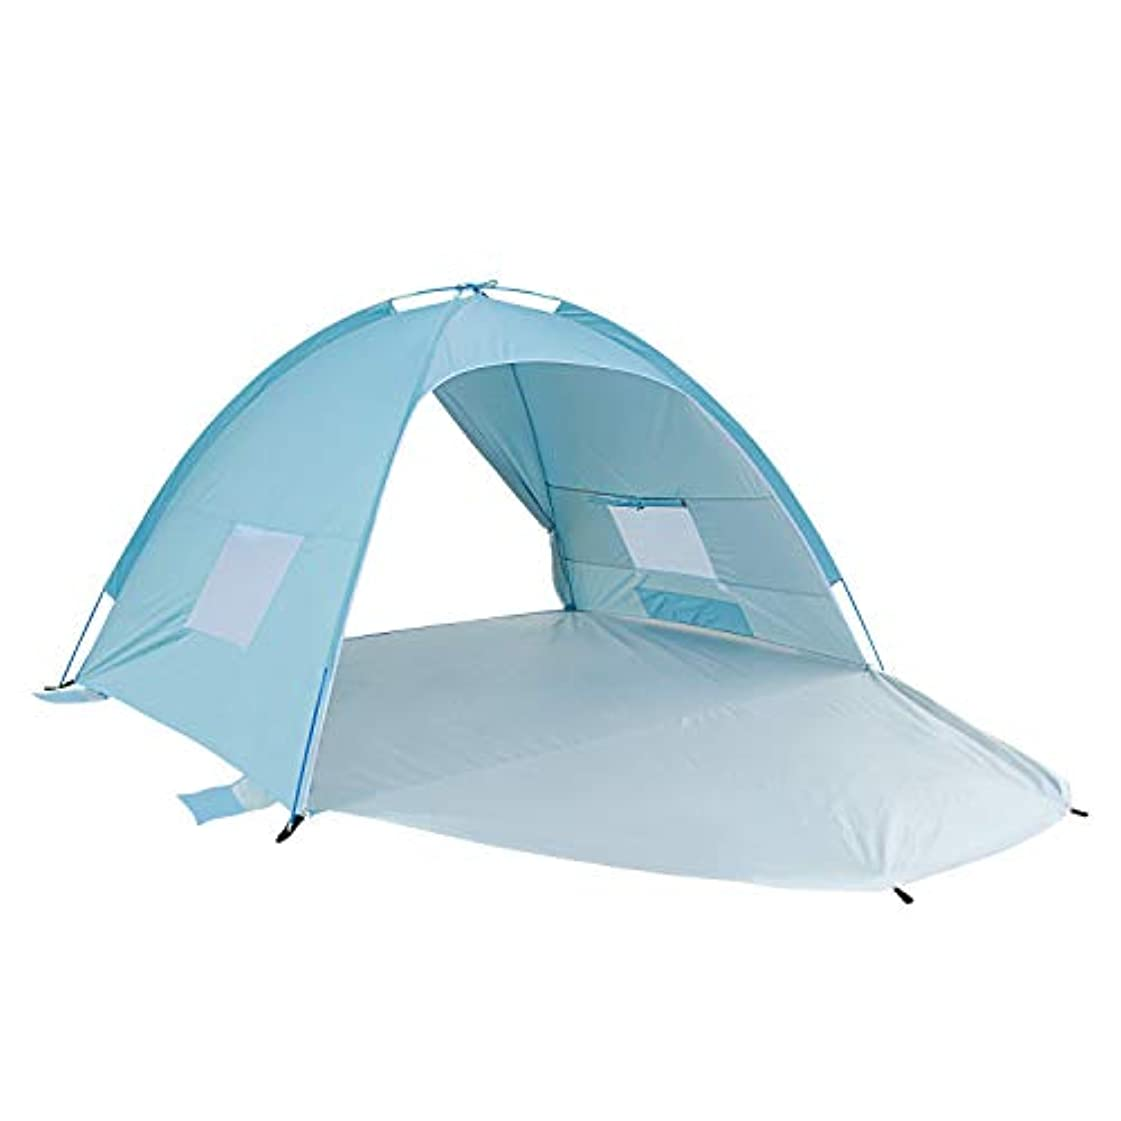 パイロットダイバー土ALPIKA Beach Tent Sun Shelter 2-3 Person Camping Tent UV Protection Easy Setup Tent for Outdoor [並行輸入品]